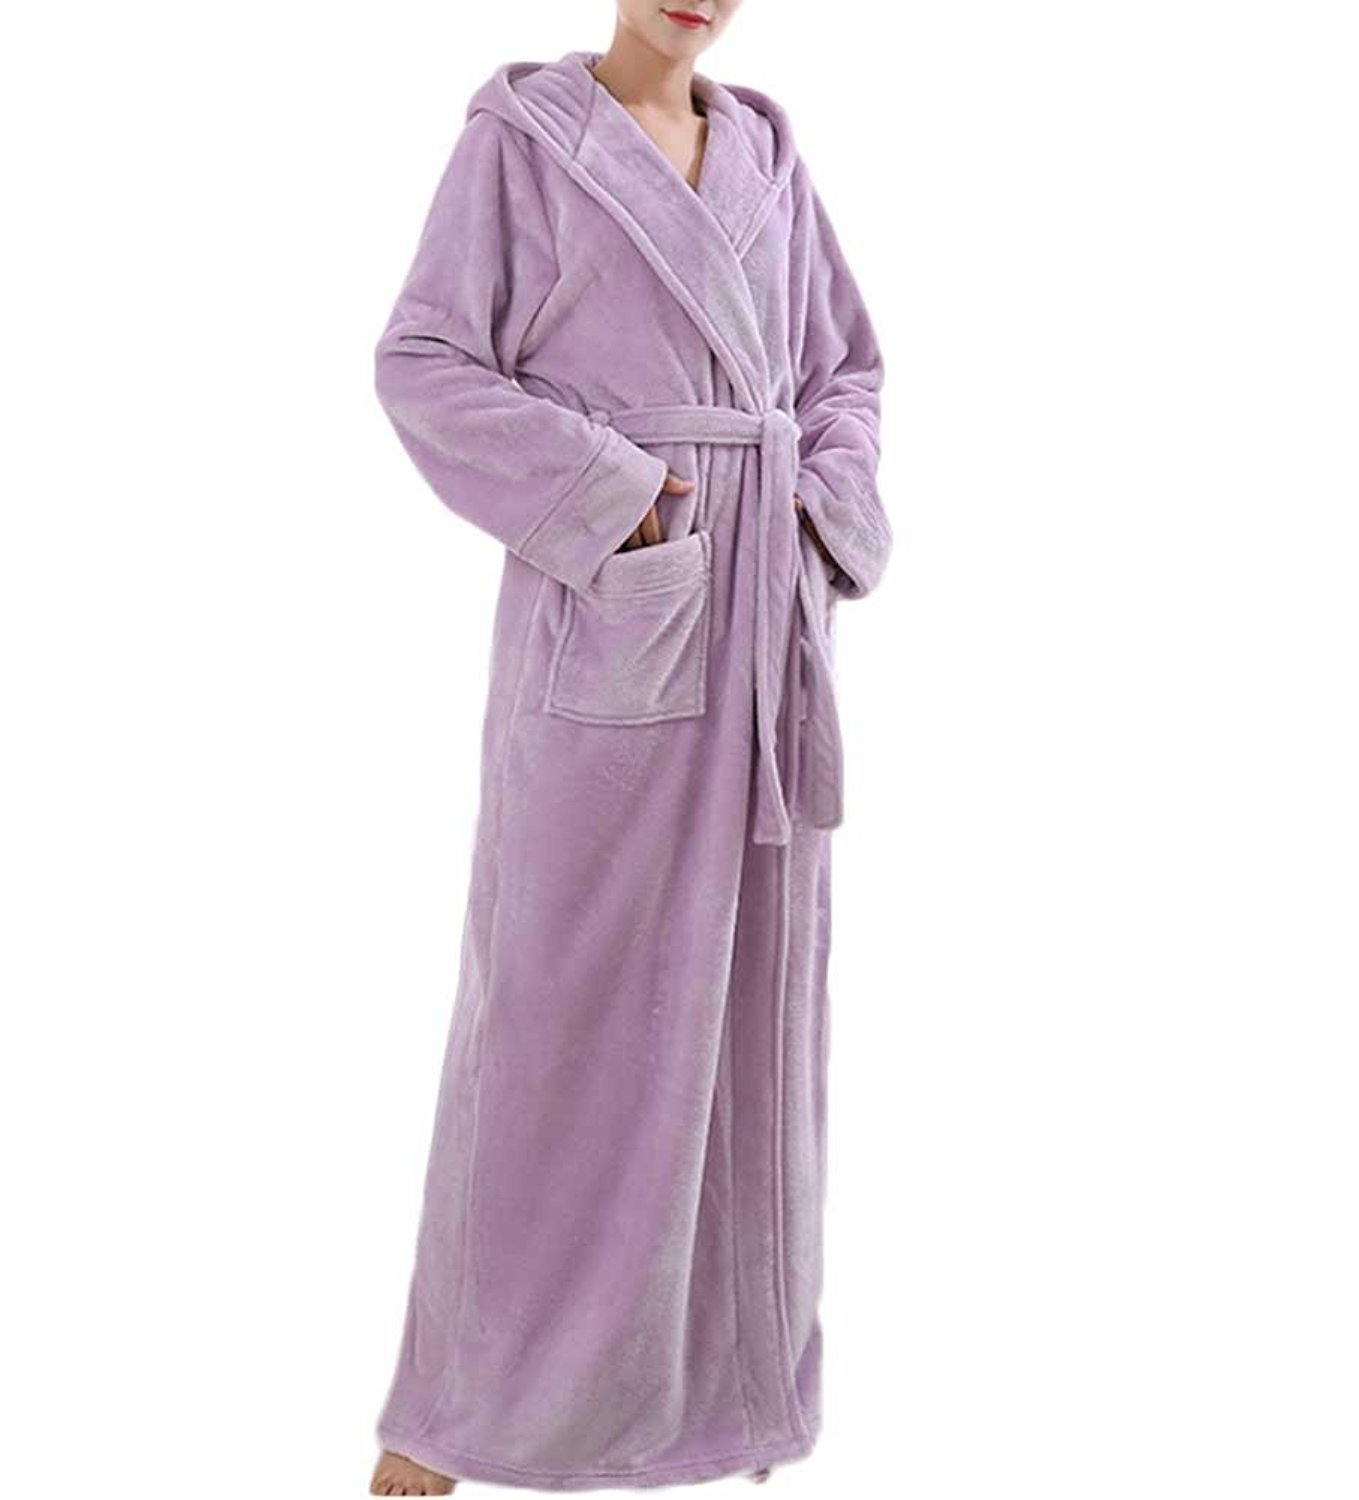 Get Quotations · Nanxson TM Women s Winter Thick Flannel Nightdress Warm  Nightgown Pajamas Bathrobe SYW0079 ac8c781e3